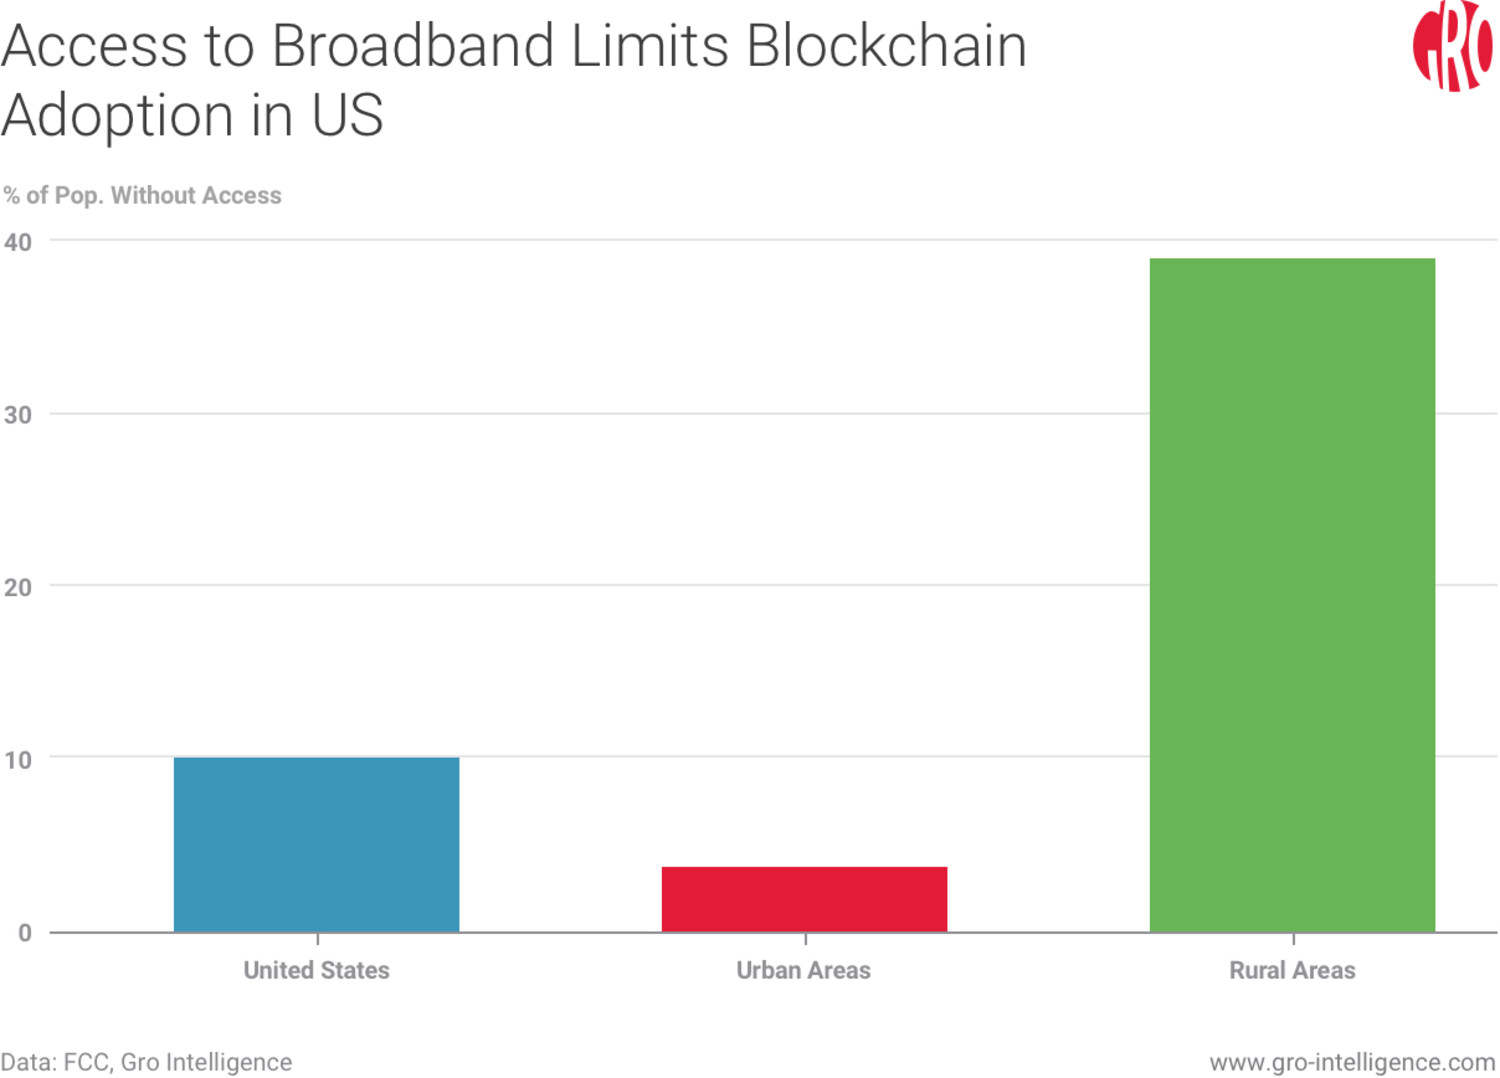 Access to Broadband Limits Blockchain Adoption in US